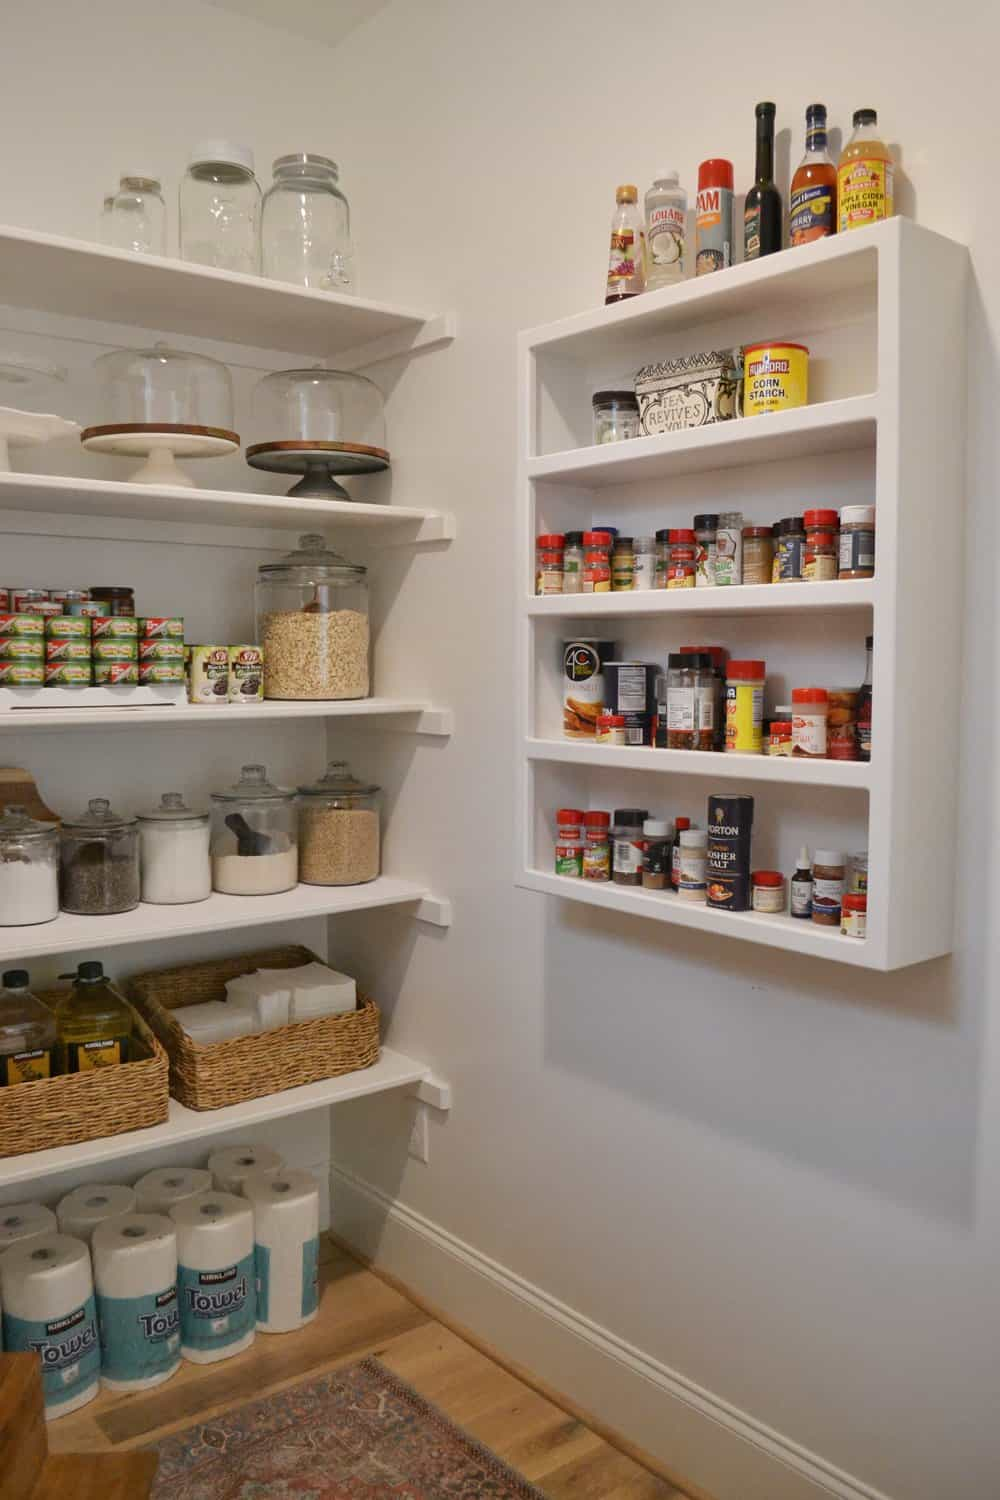 a walk-in pantry with a built in spice rack showing pantry organization